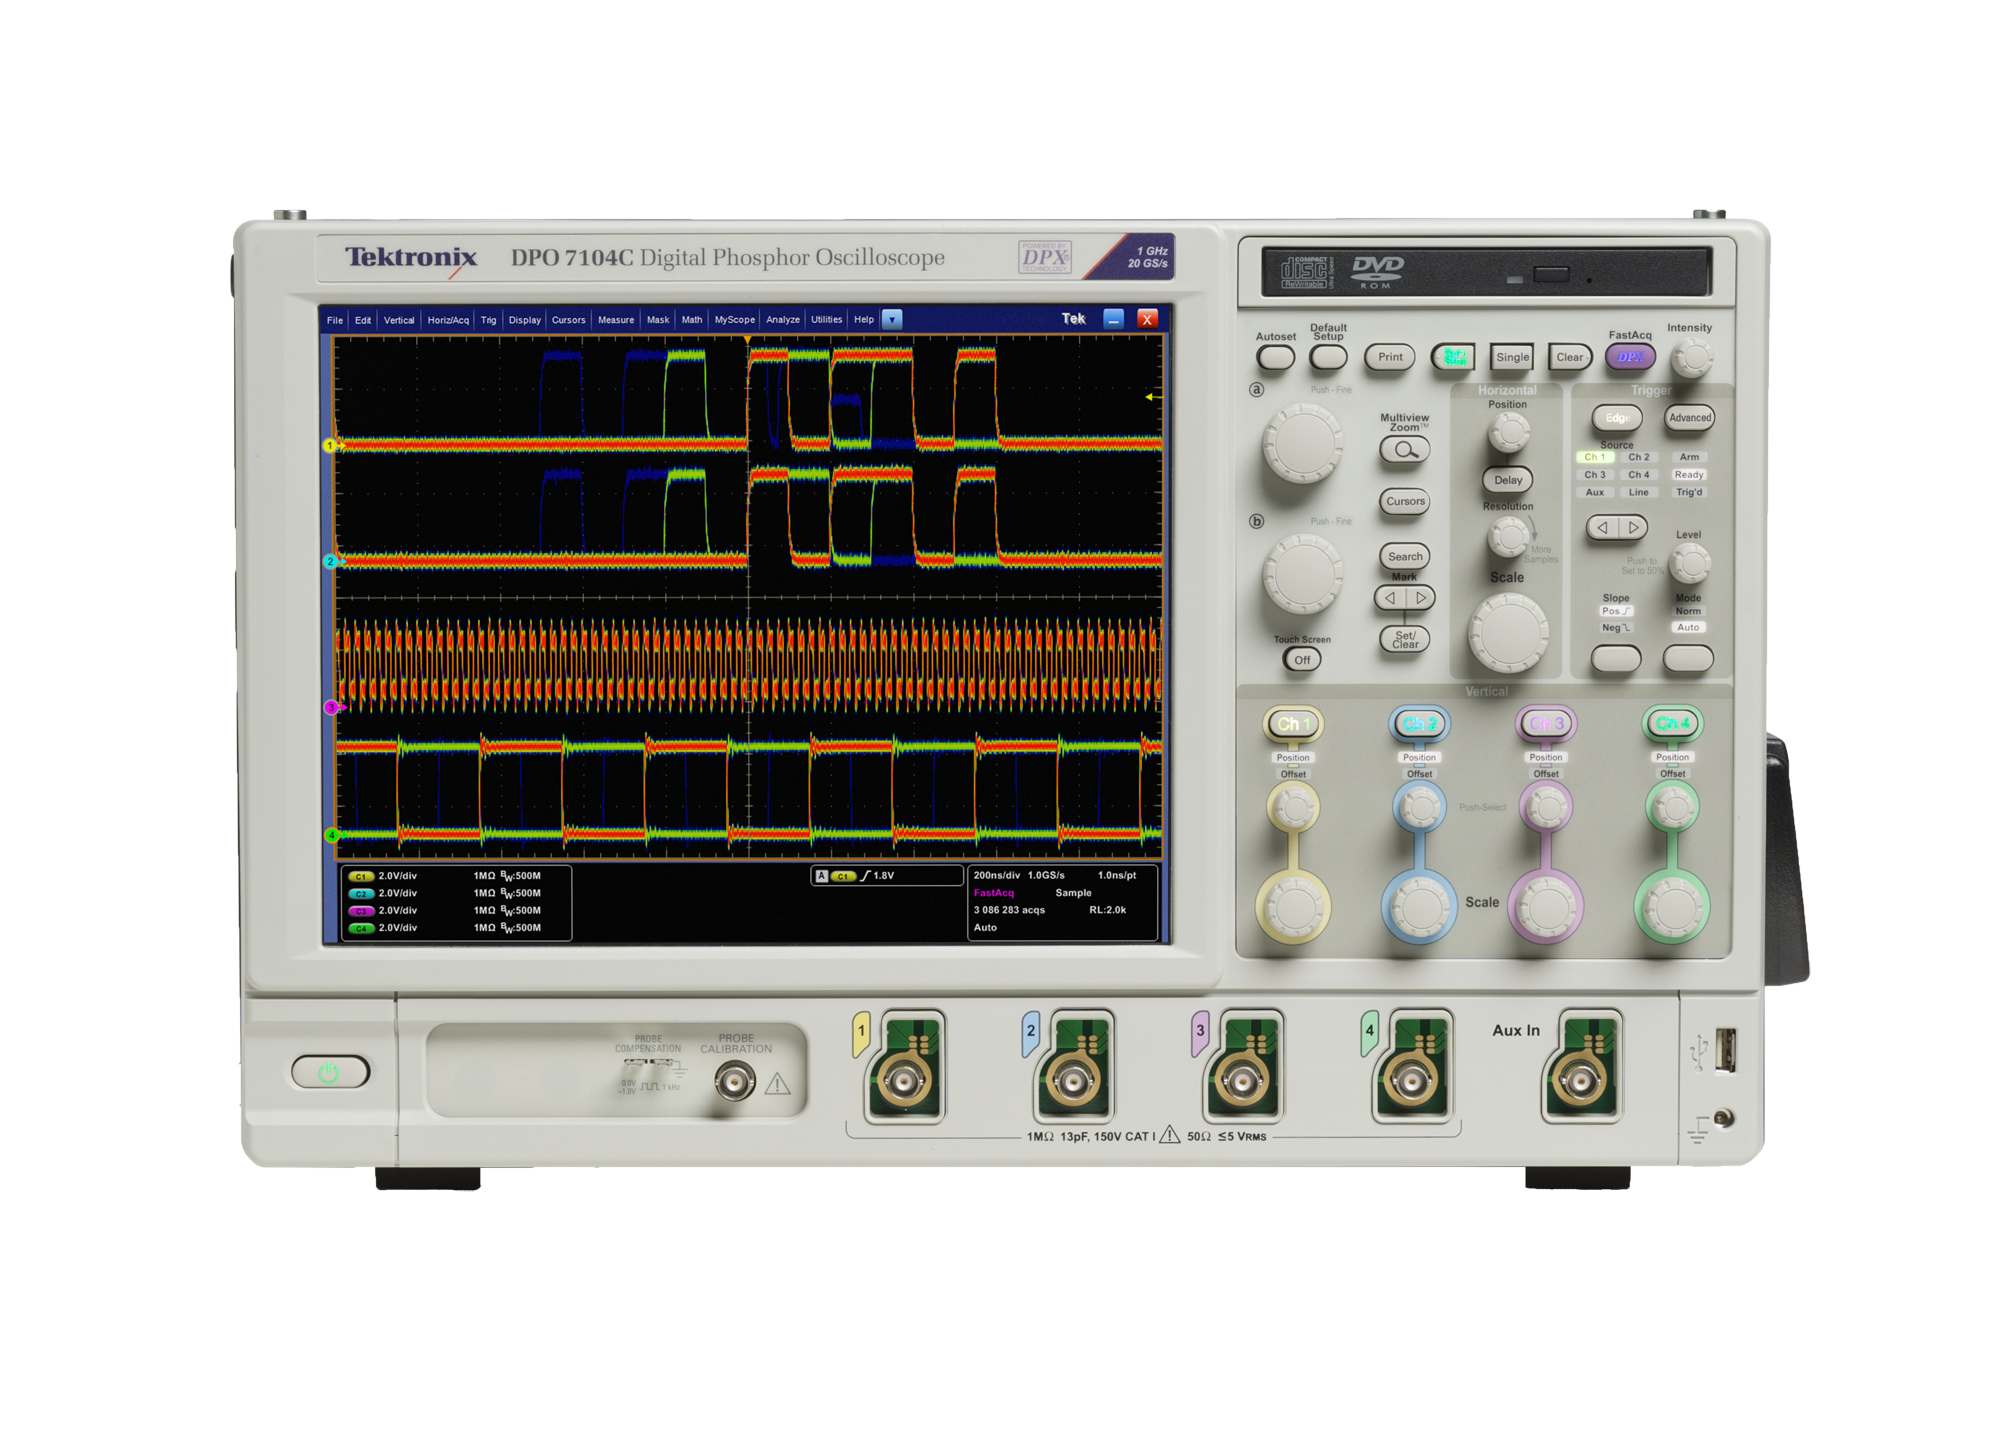 Tektronix DPO7000C Series Digital Phosphor Oscilloscope